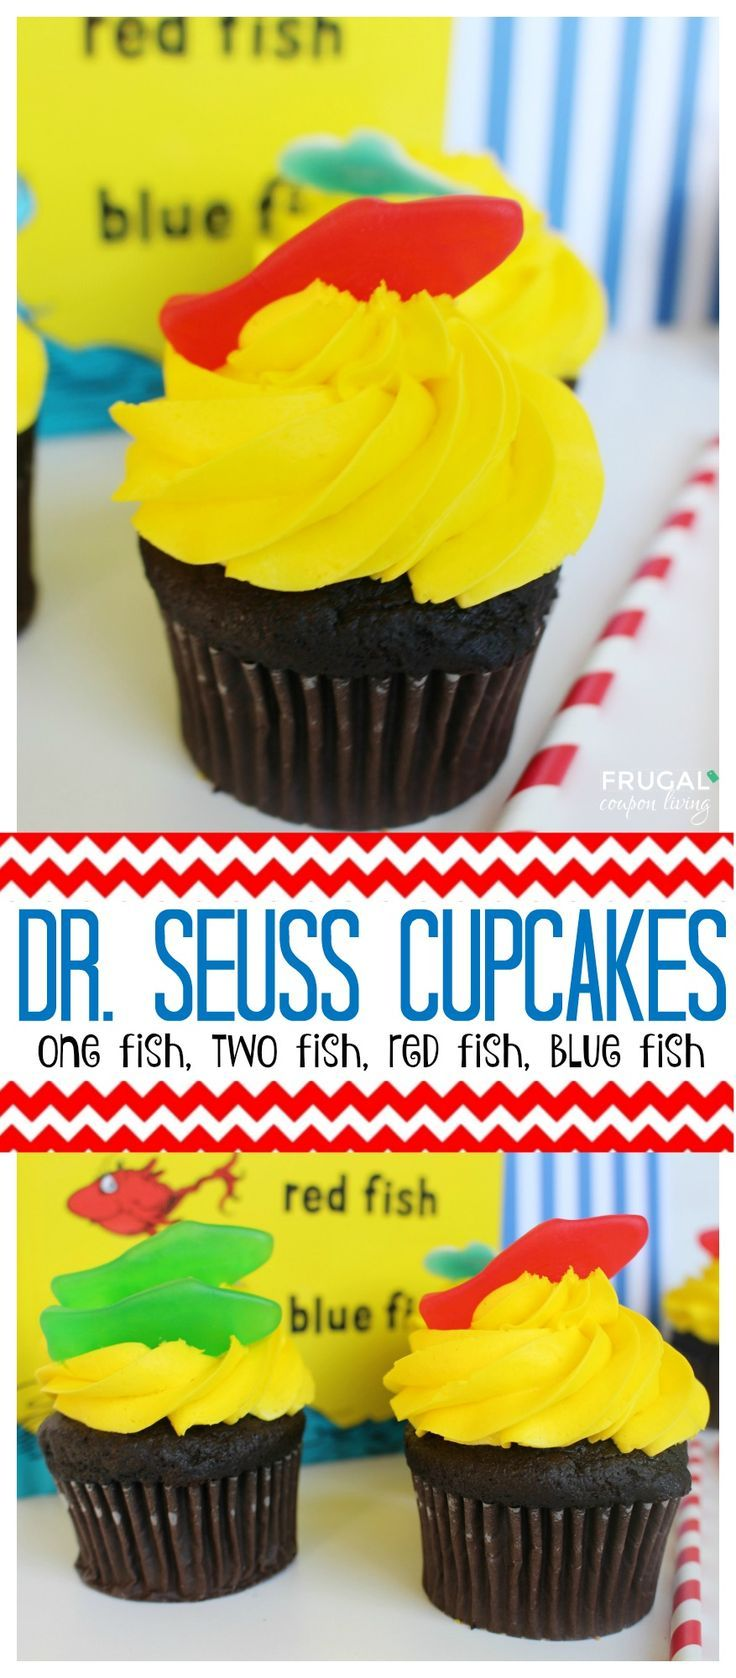 Dr. Seuss Cupcakes – One Fish, Two Fish on Frugal Coupon Living. Dr. Seuss Day Dessert Idea or Dr. Seuss Party Idea.